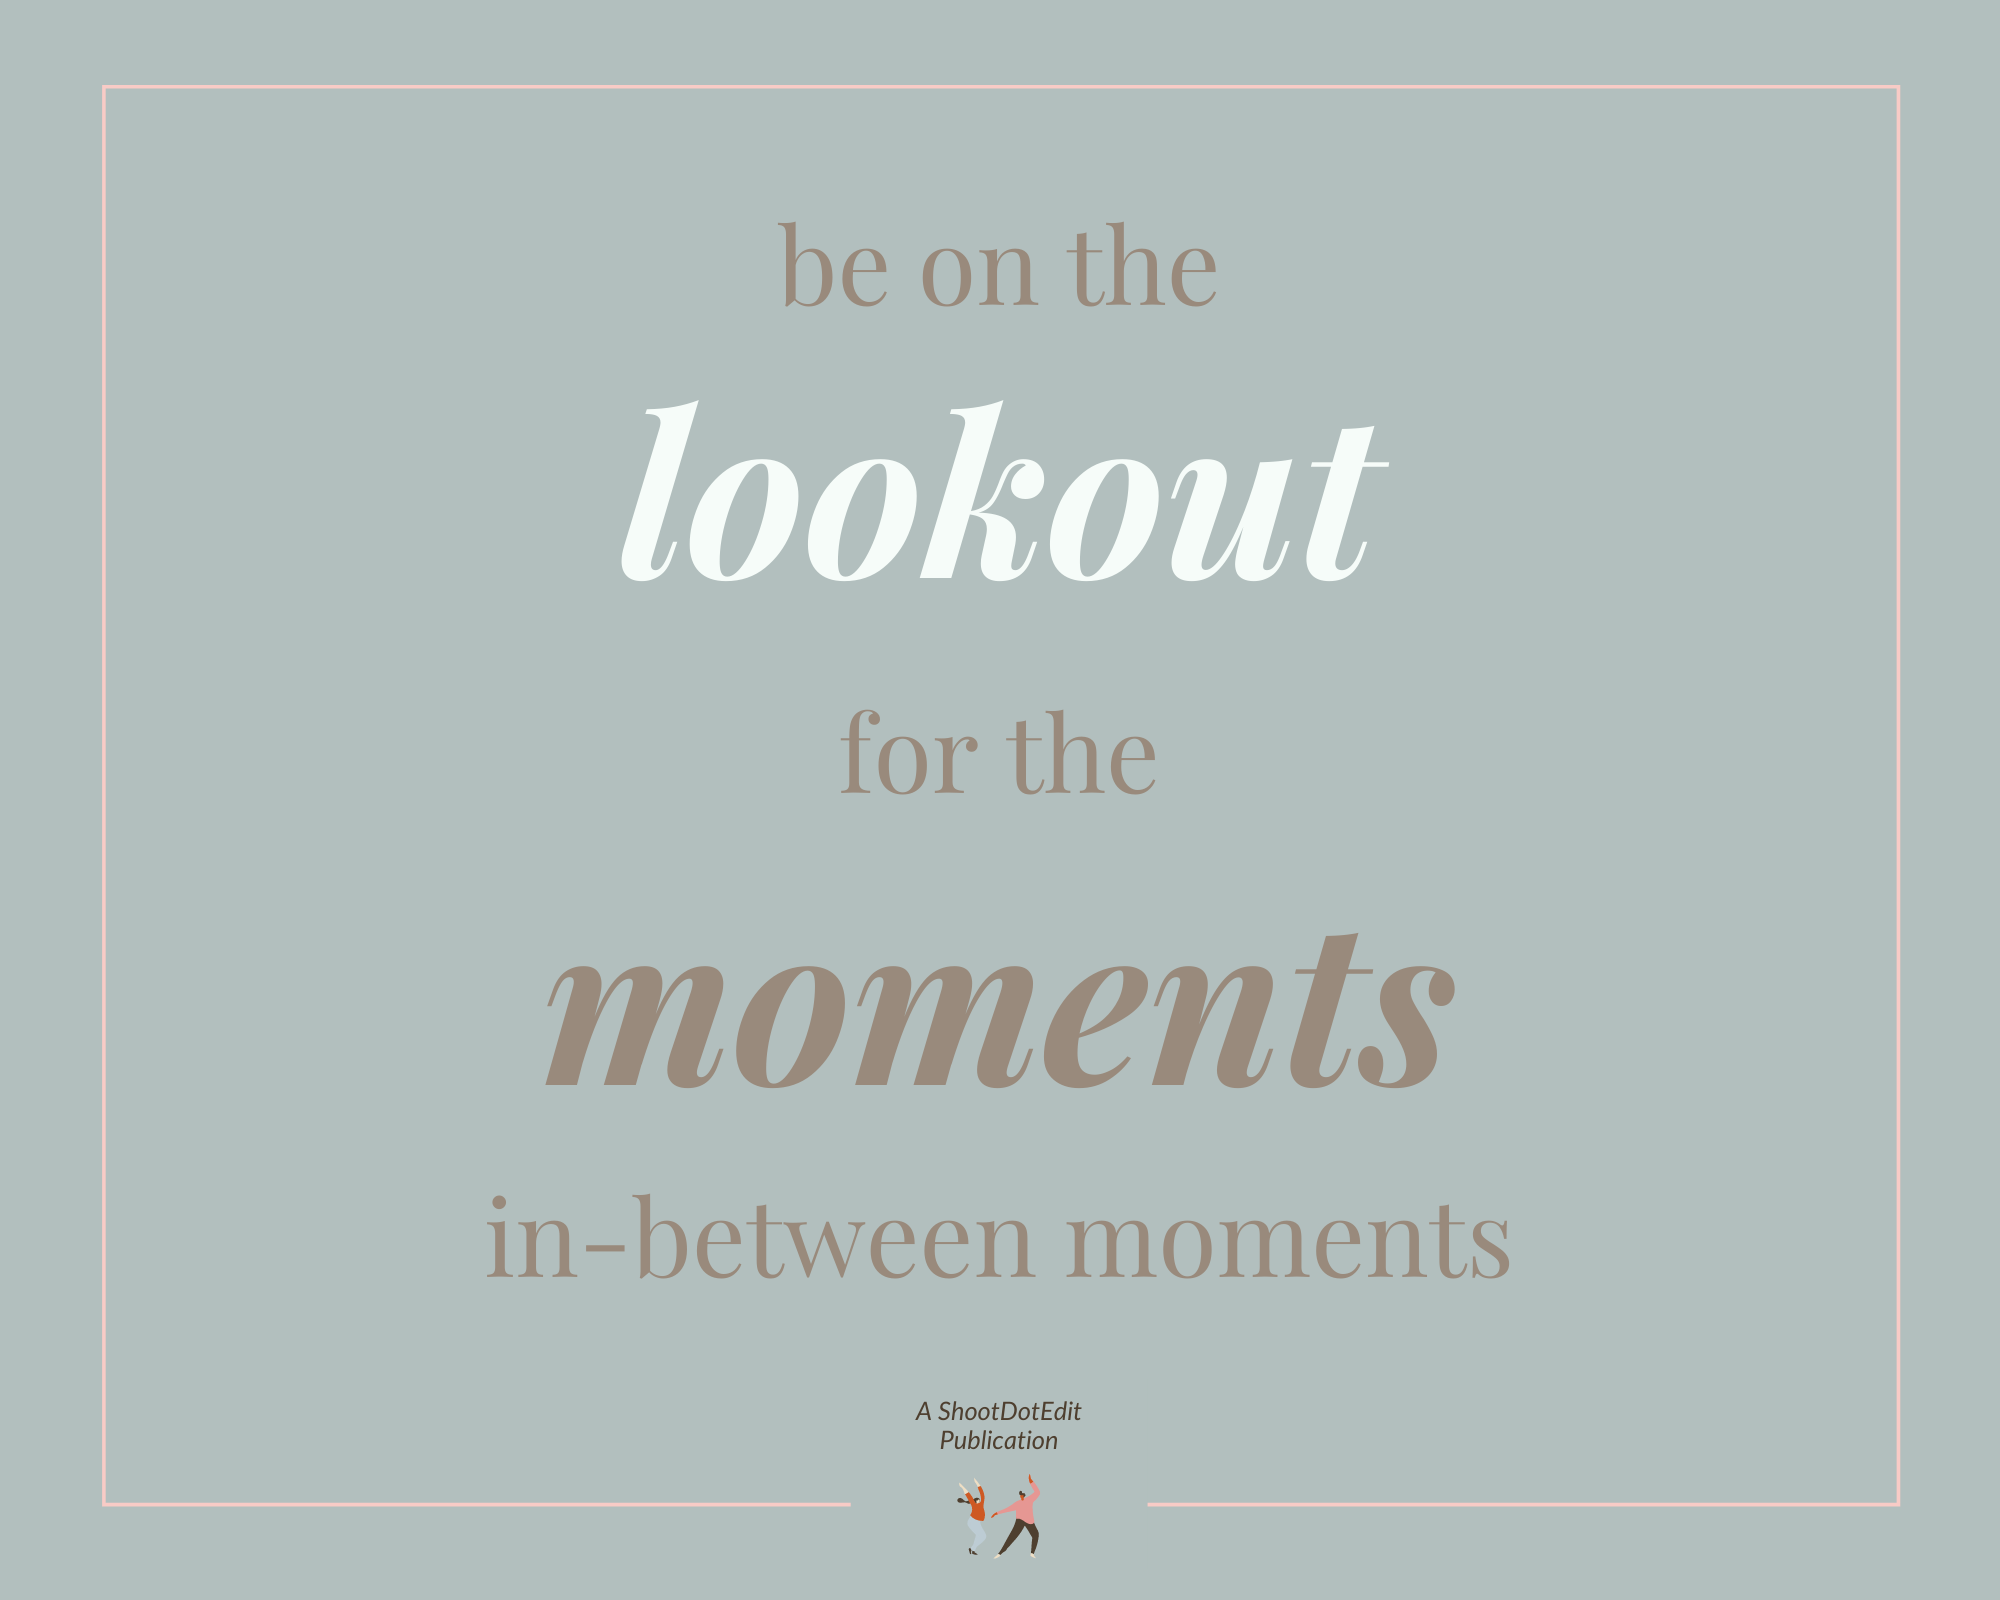 Infographic stating be on the lookout for the moments in-between moments